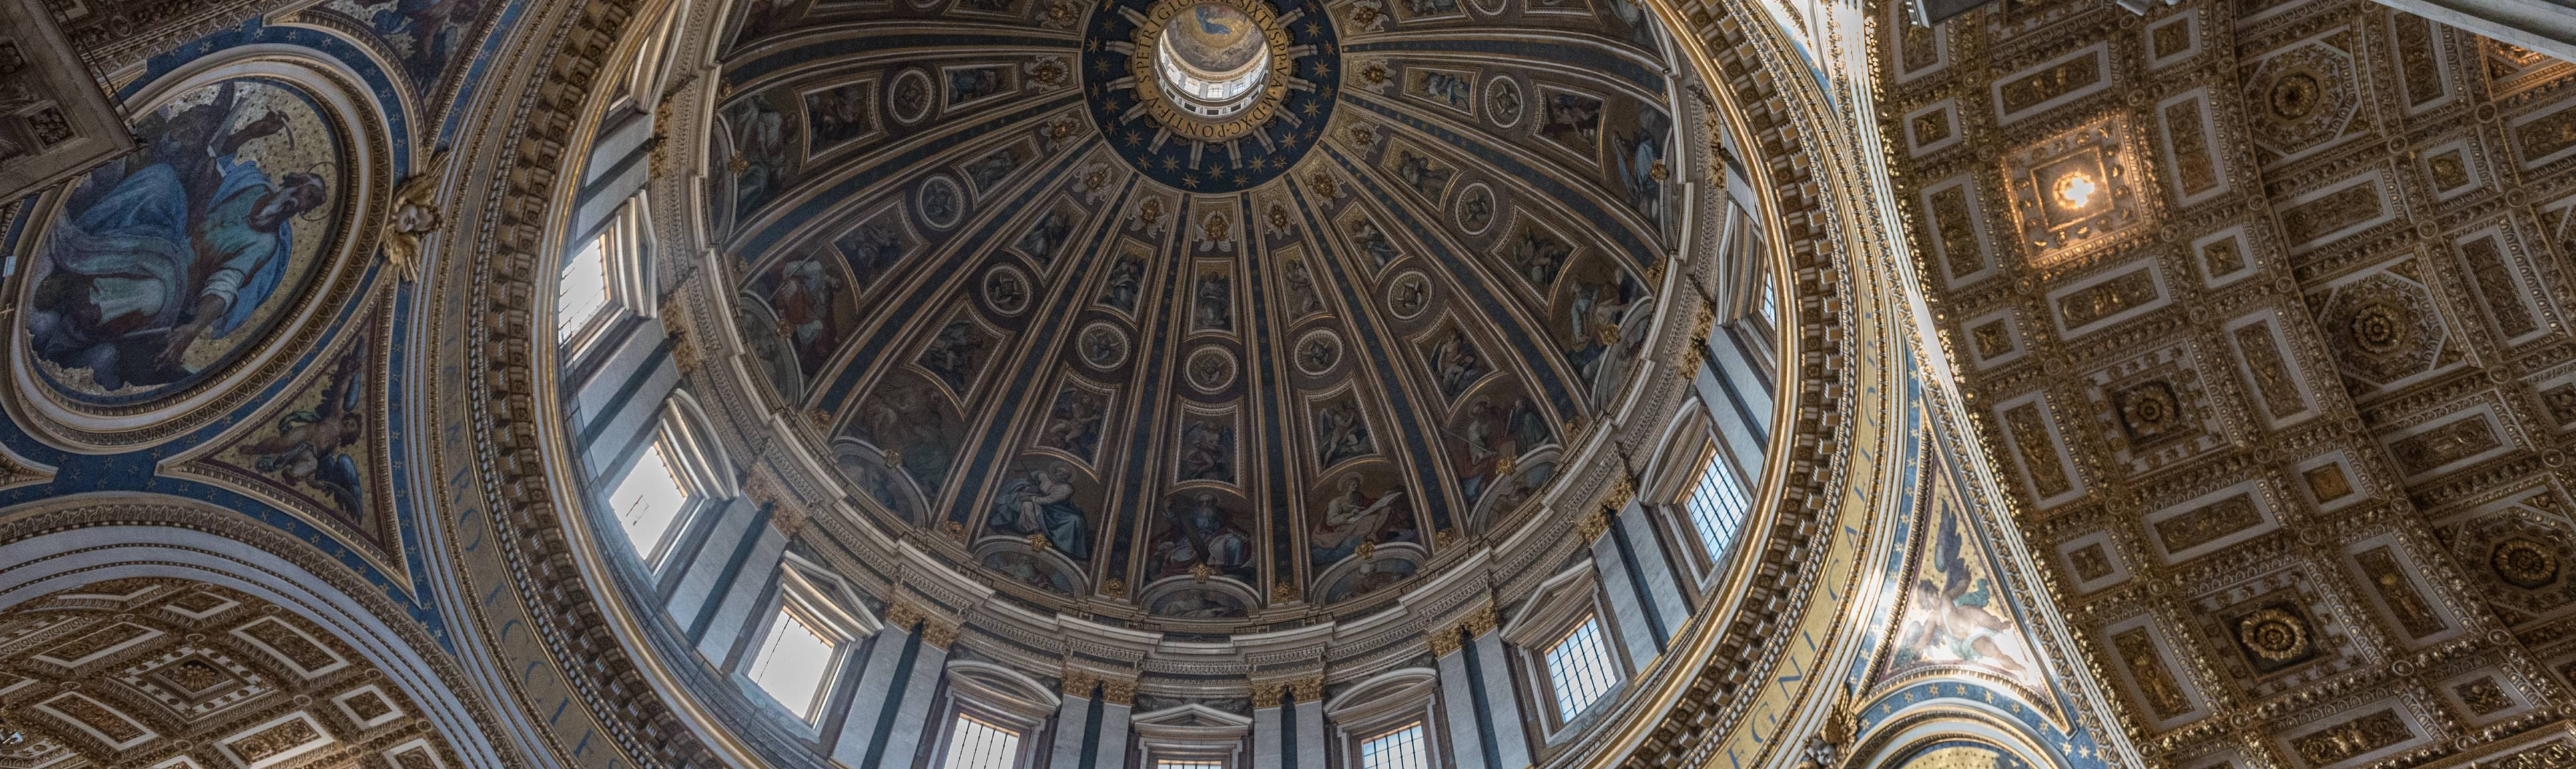 Looking up inside St. Peter's Basilica in Rome